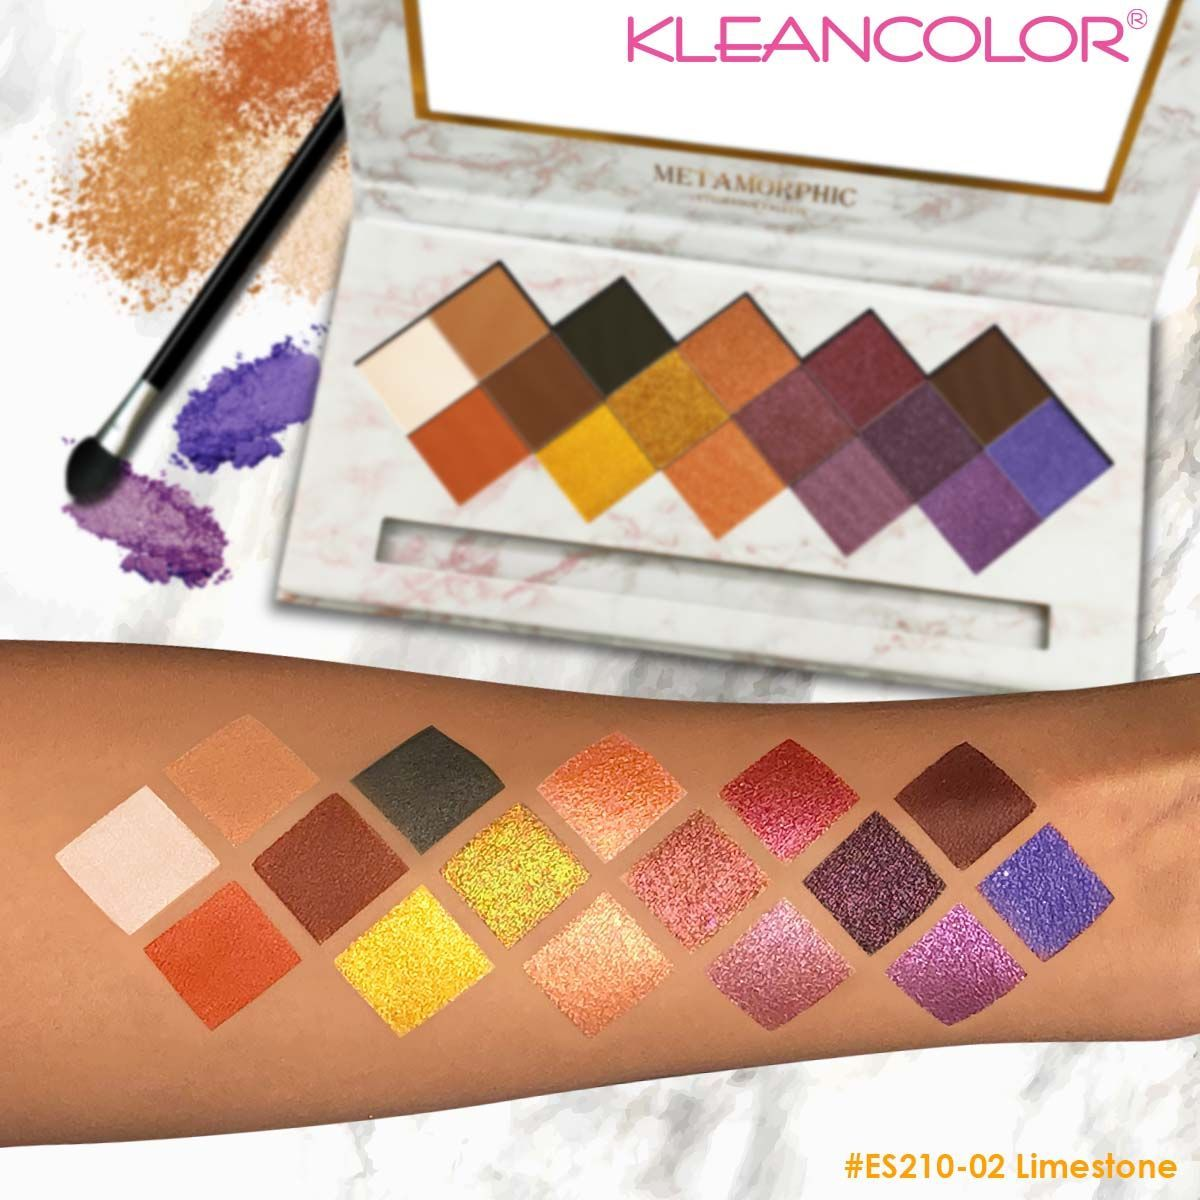 KleanColor Metamorphic Eyeshadow Palette Set #ES210 (12PC)